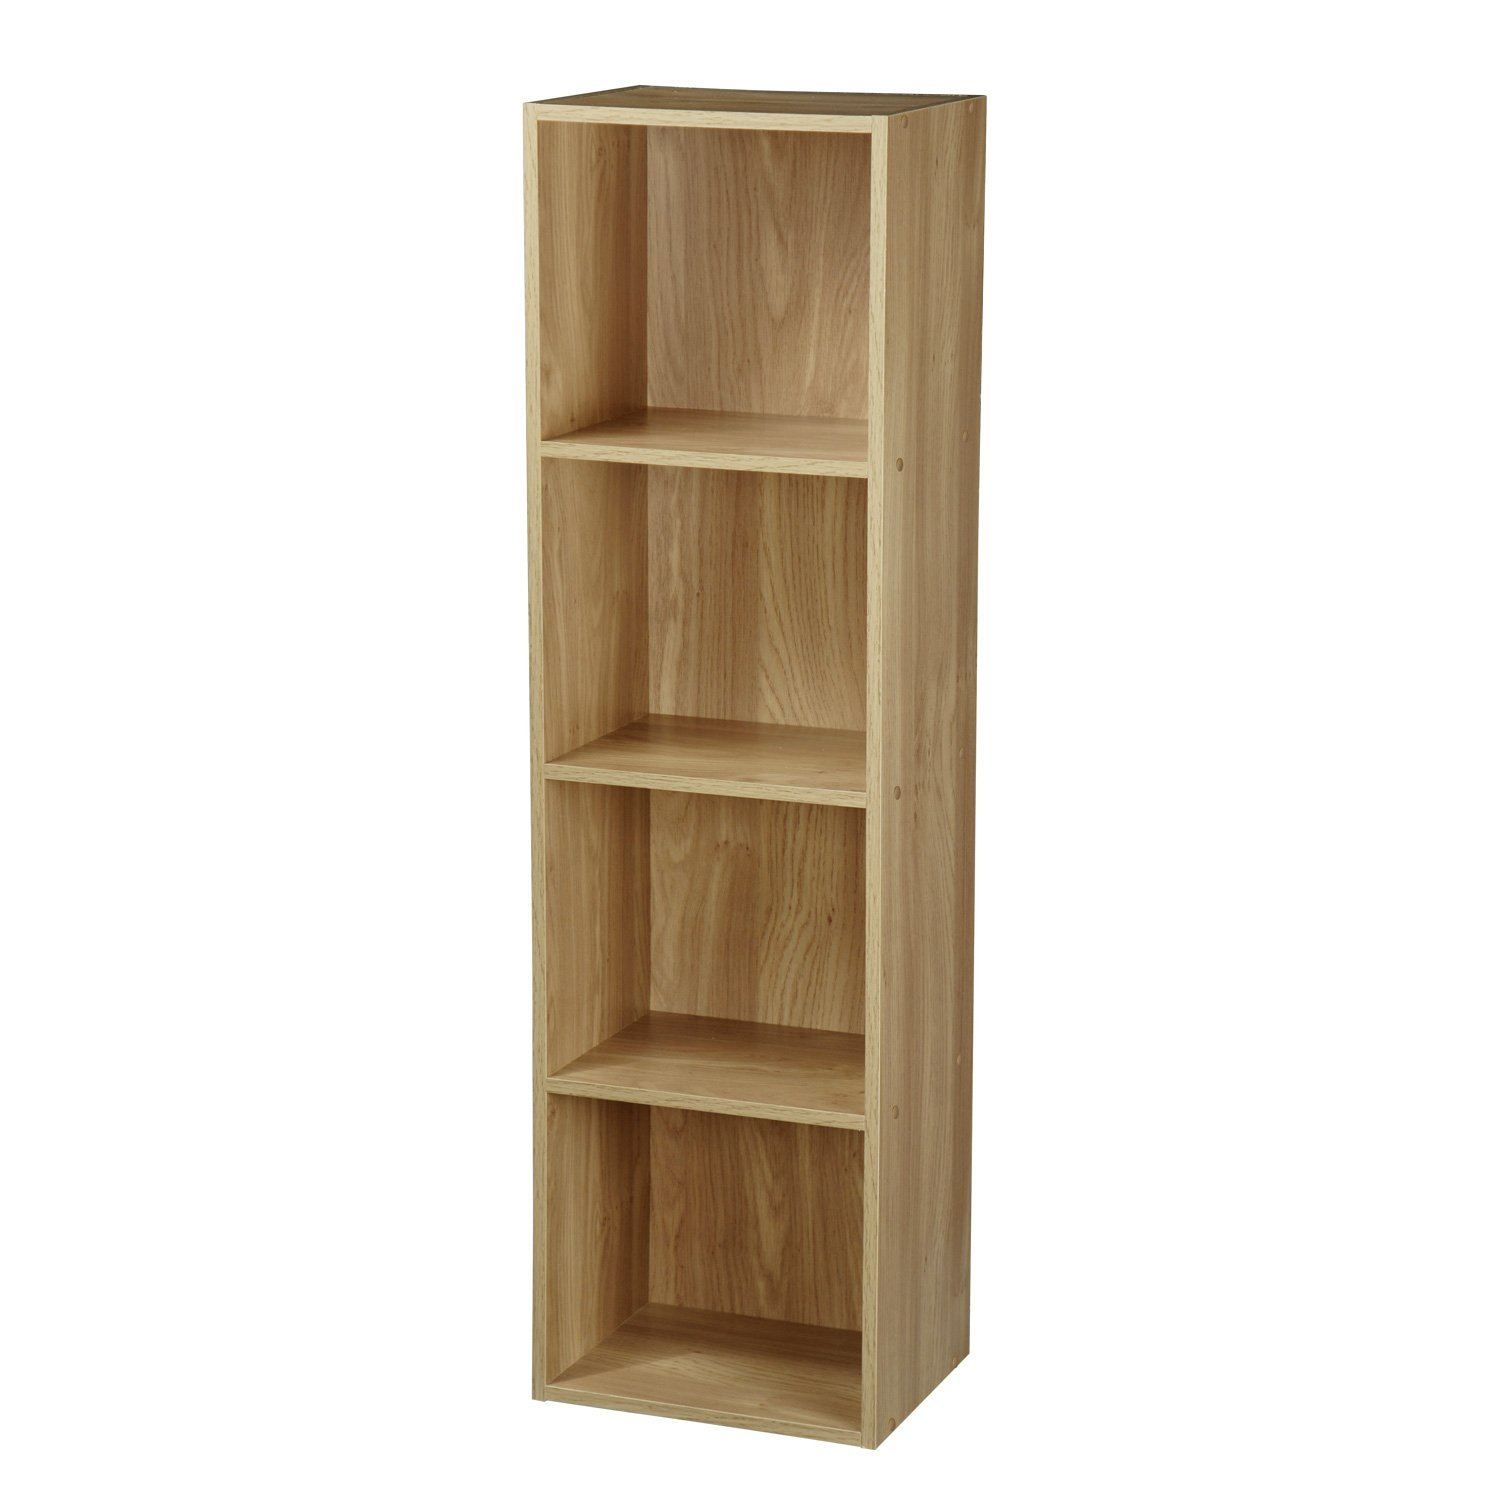 New Wooden Display Storage Units Furniture Shelve White Oak Black Beech Shelf Ebay